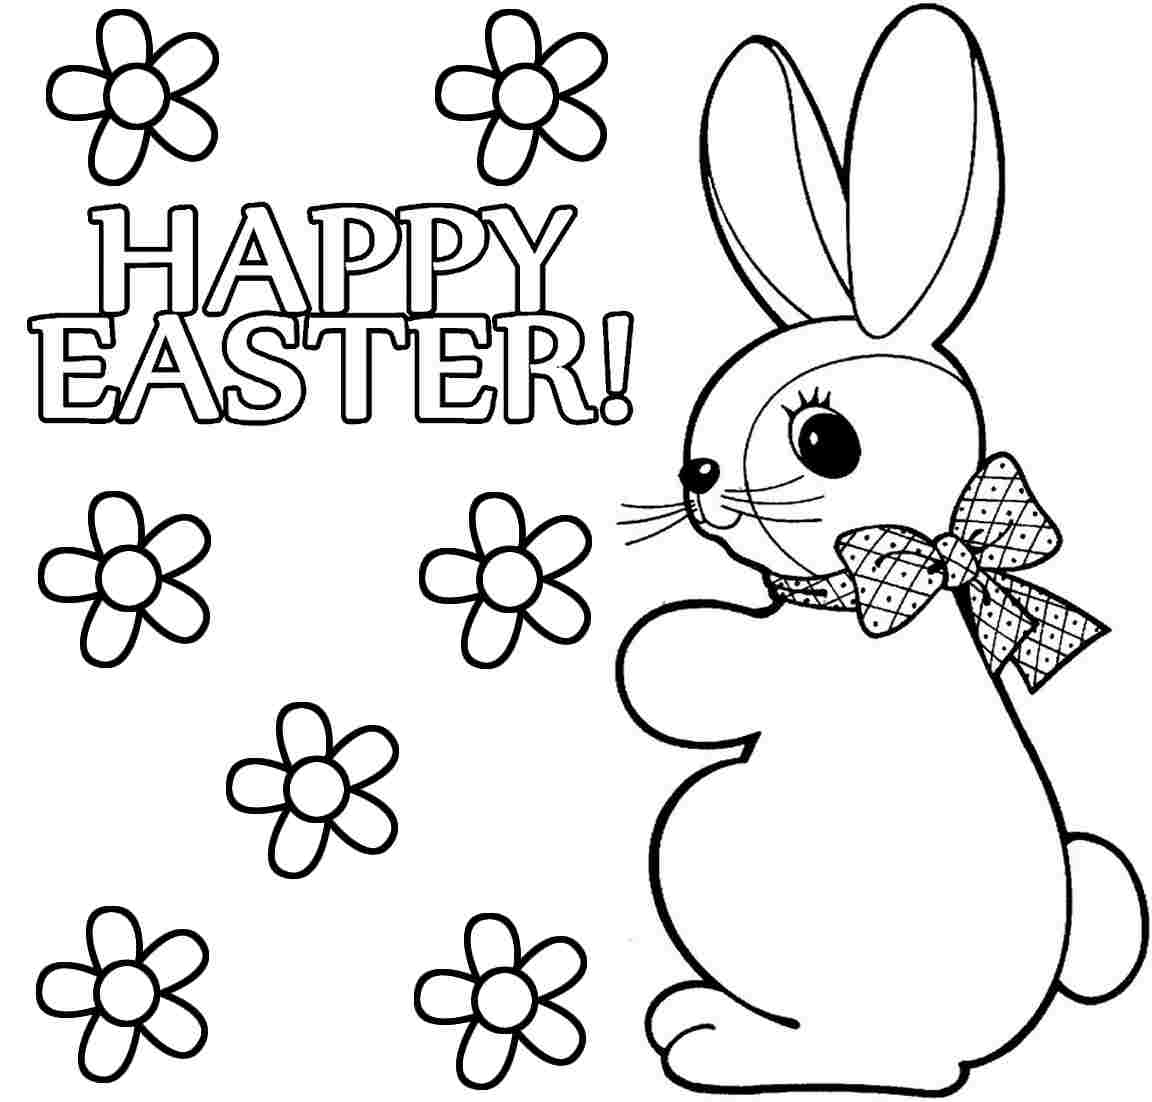 Easter Color Pages Printable Coloring and Coloring Download Of Easter Basket Coloring Pages to Print Gallery